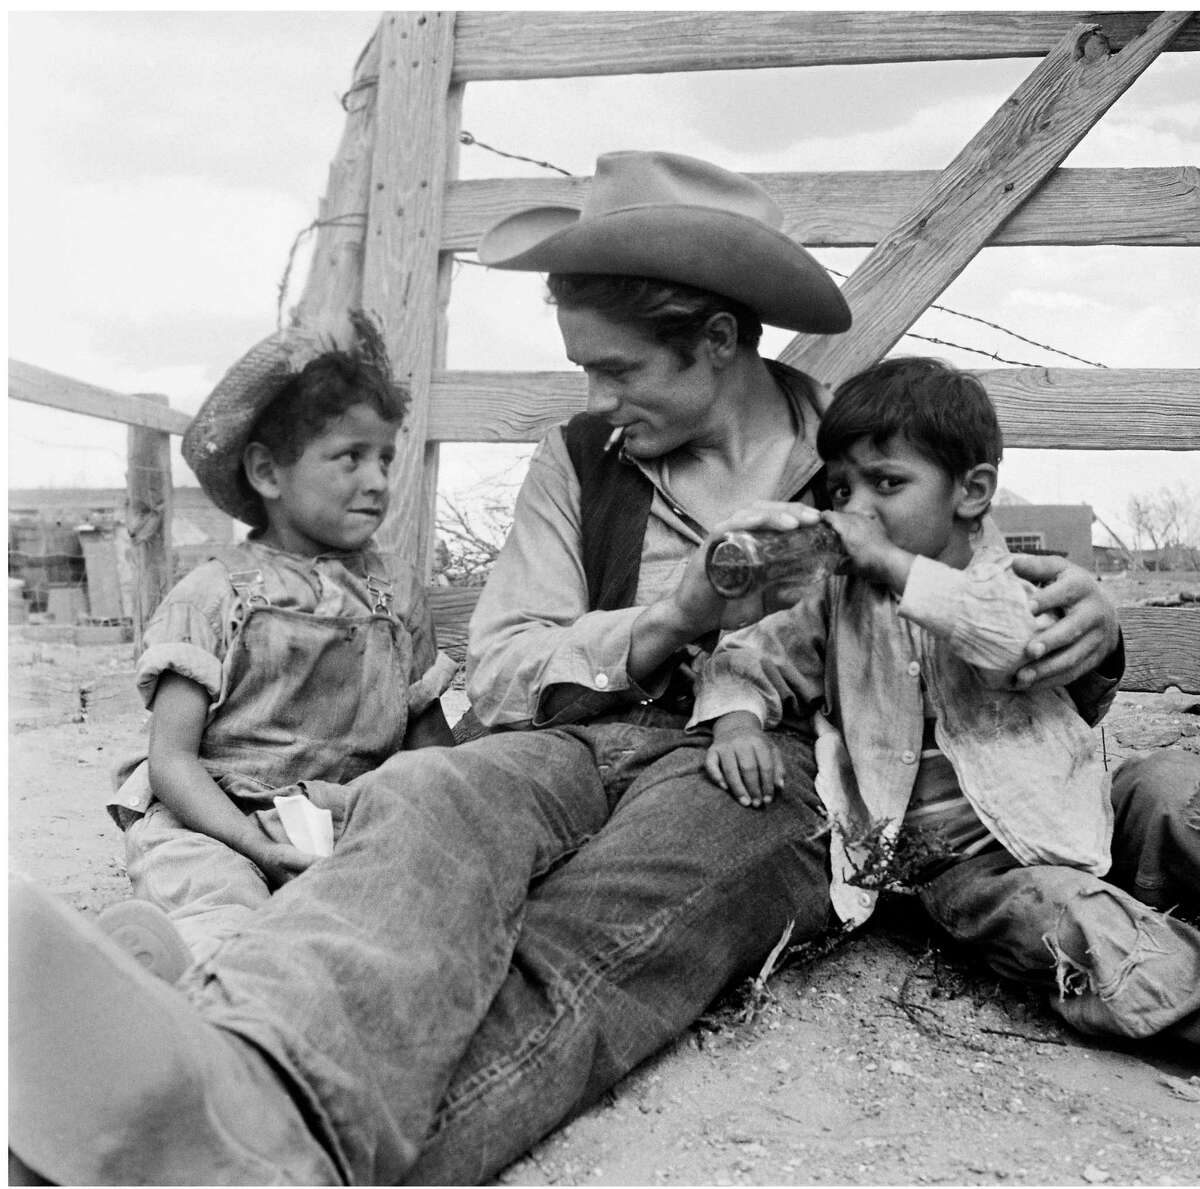 Actor James Dean interacts with two Latino children on the set of the film